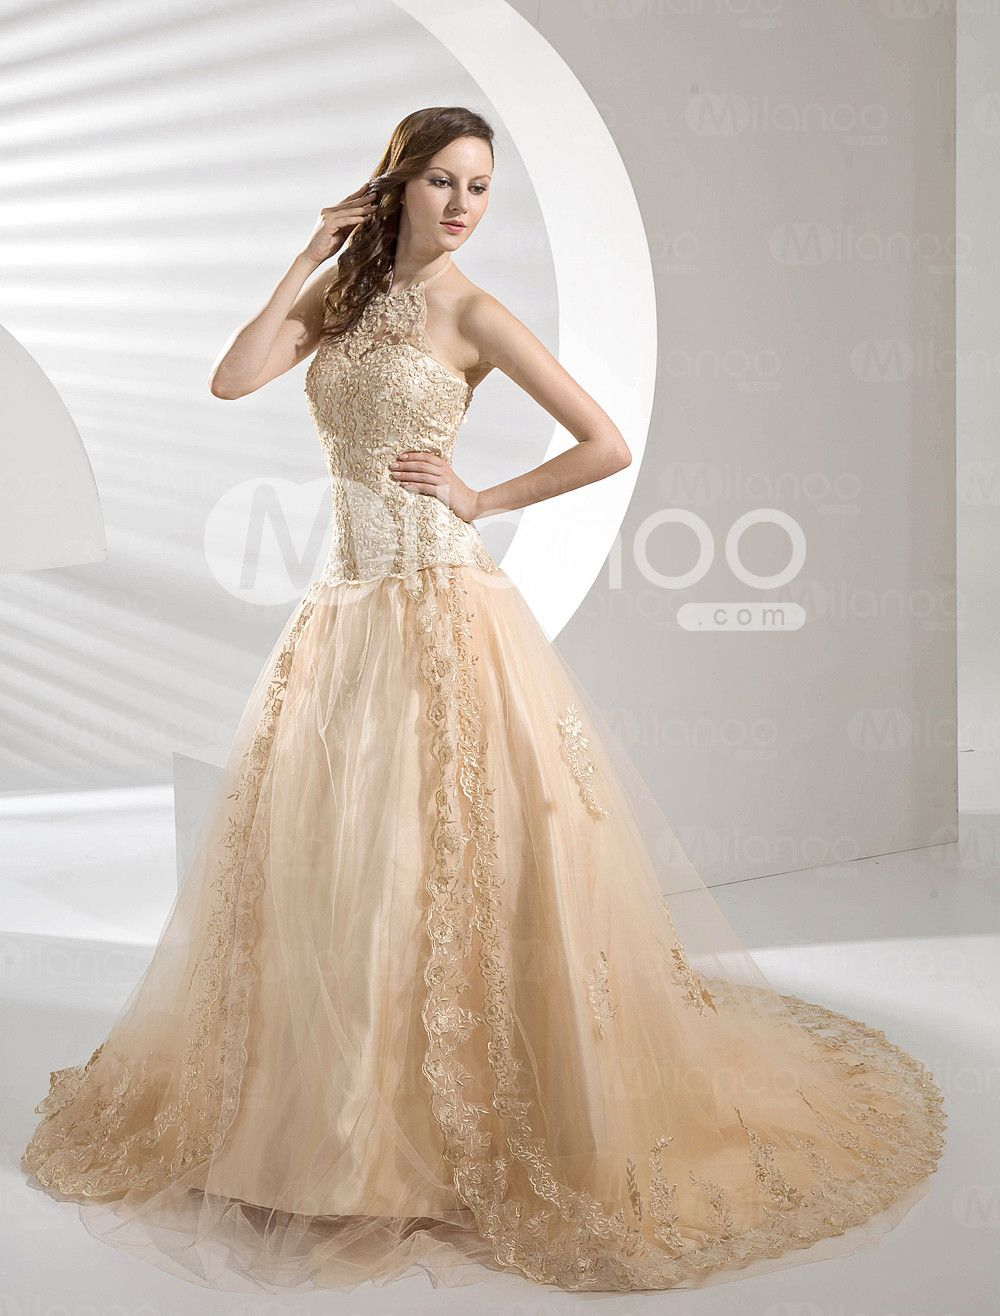 Satin lace organdie wedding dress milanoo wedding